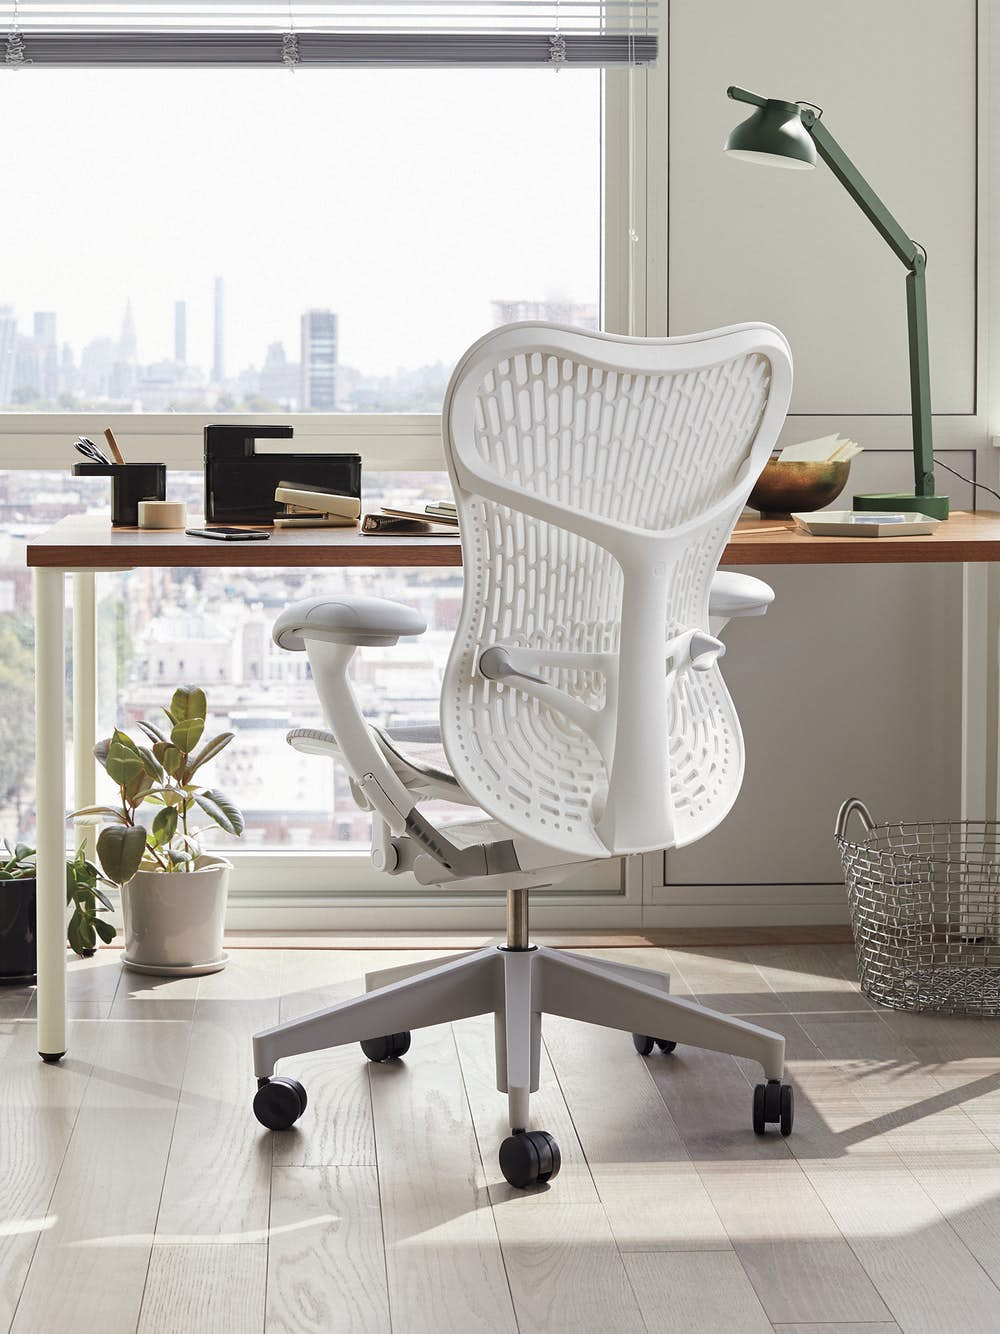 Mirra 2 Chair with OE1 Table